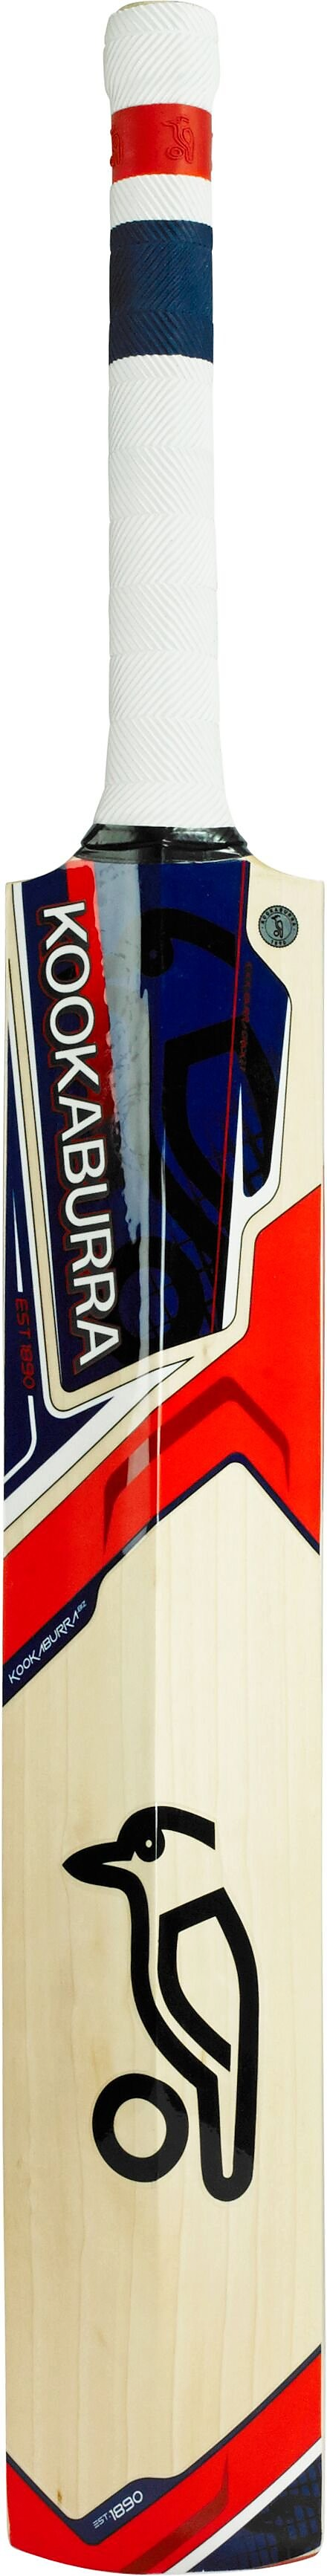 Kookaburra Ignite 1200 Cricket Bat